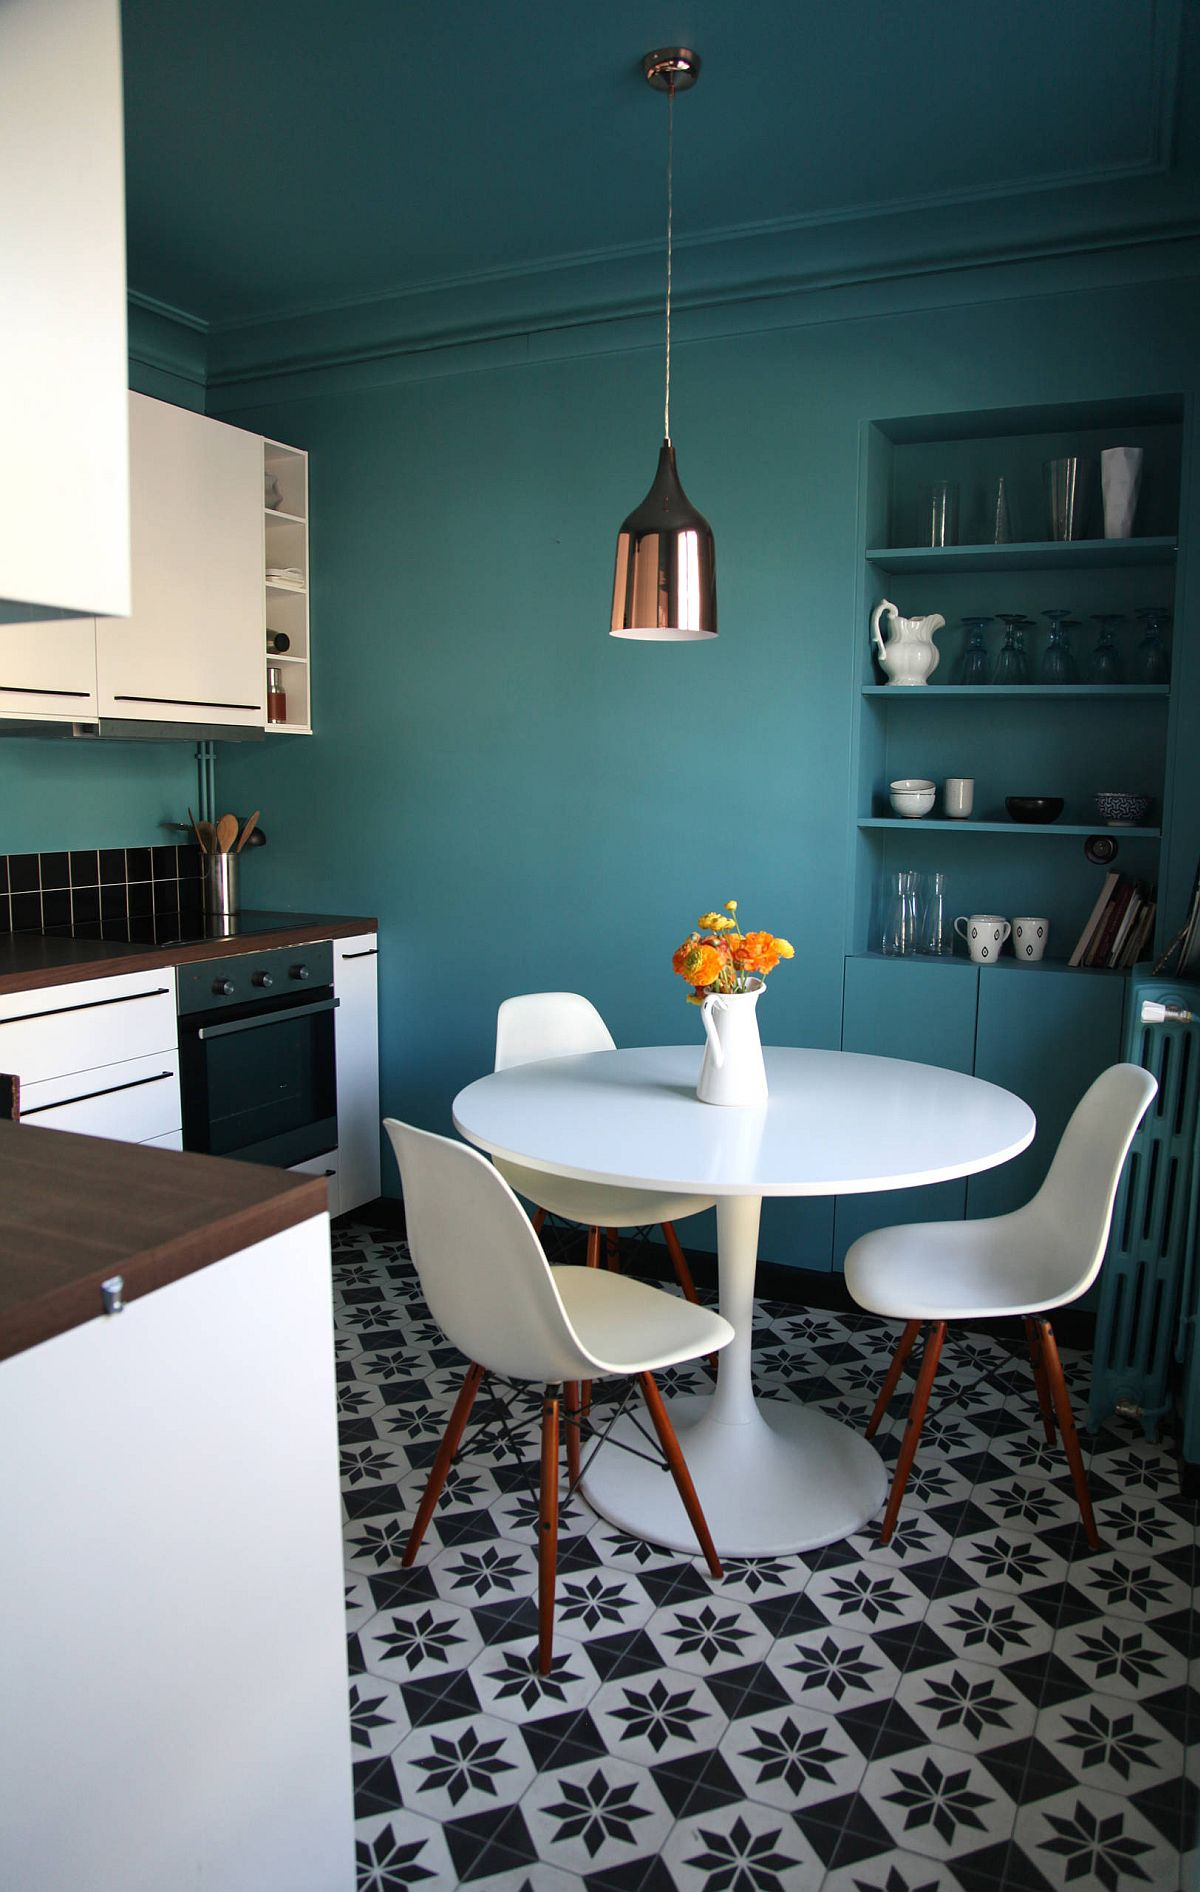 Find the shade of turquoise that works for you in the small kitchen